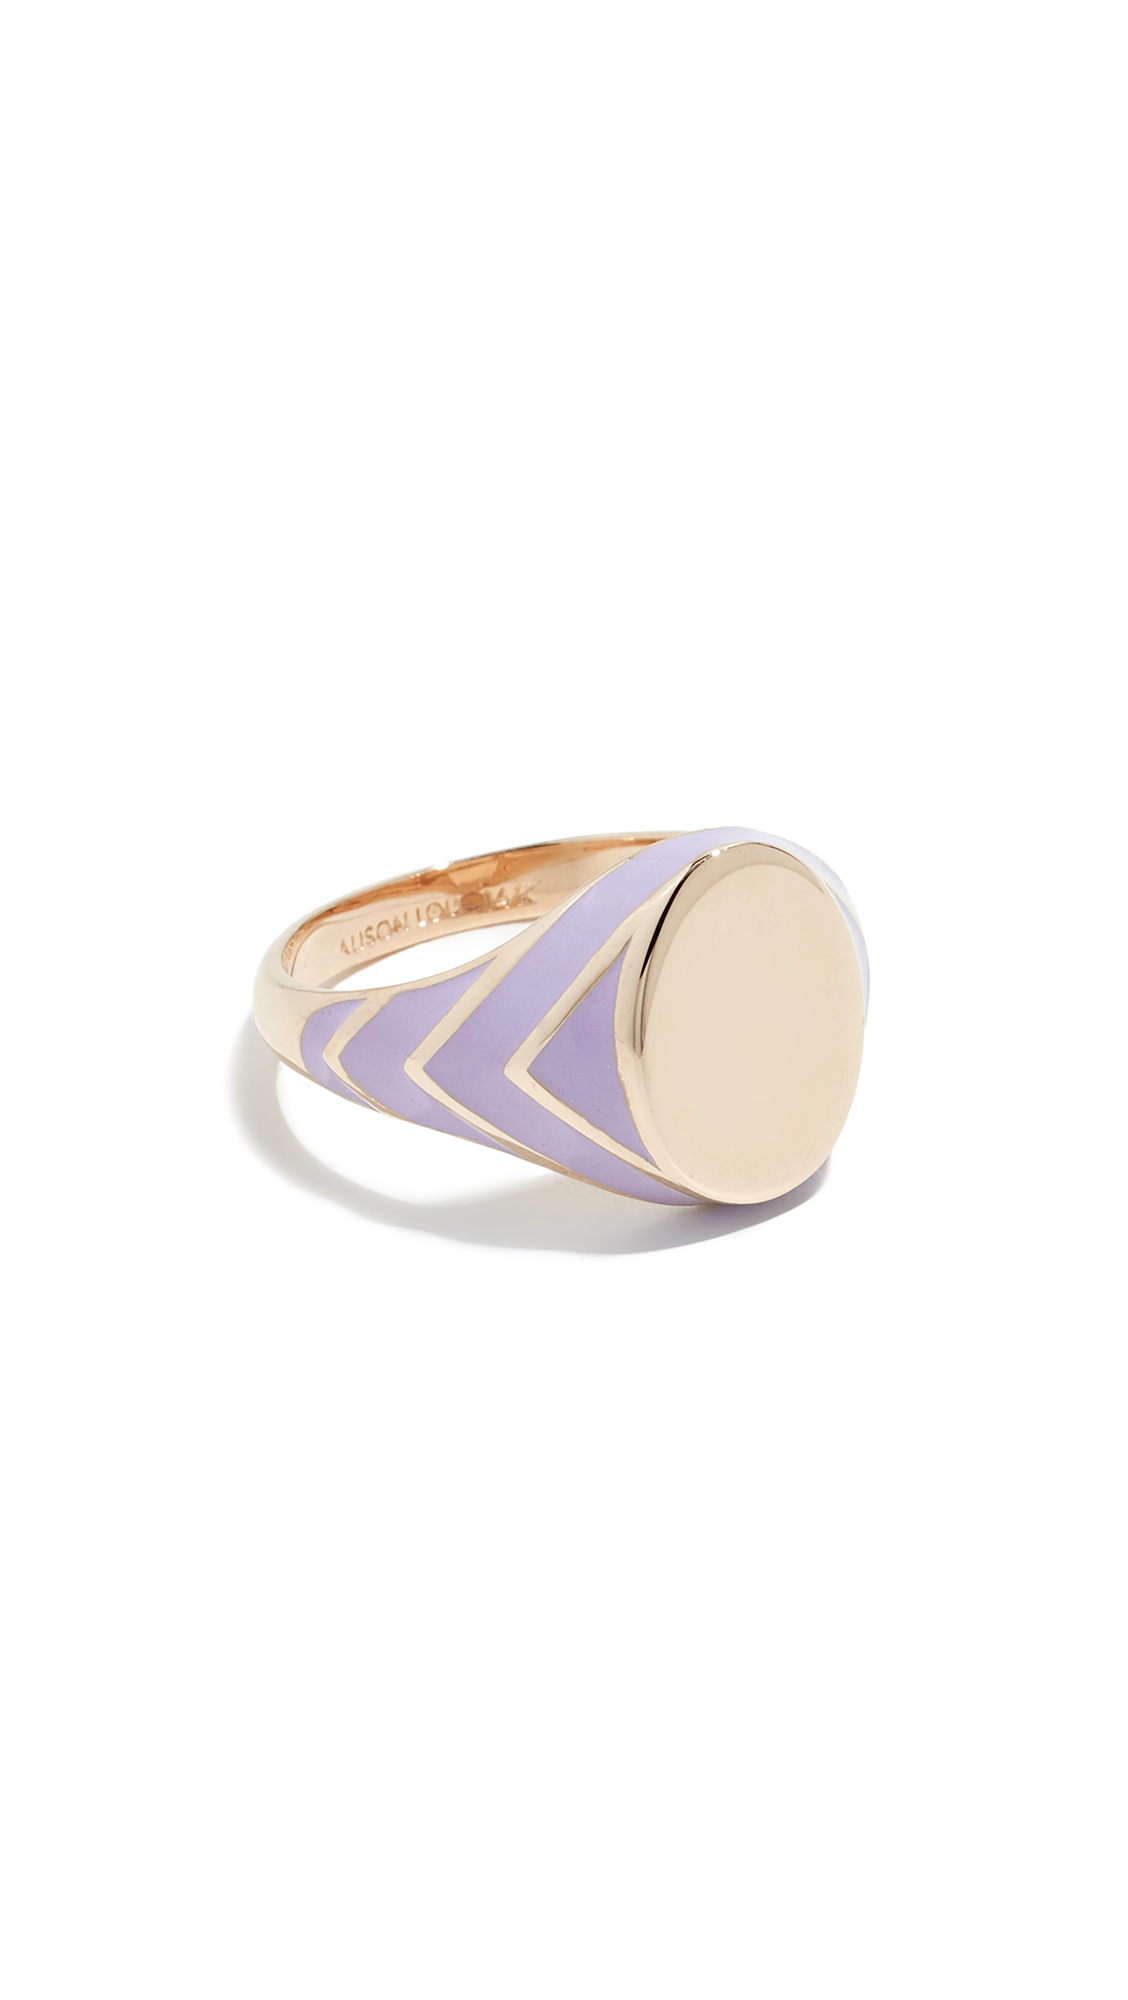 Alison Lou 14k Stripe Signet Ring - Purple